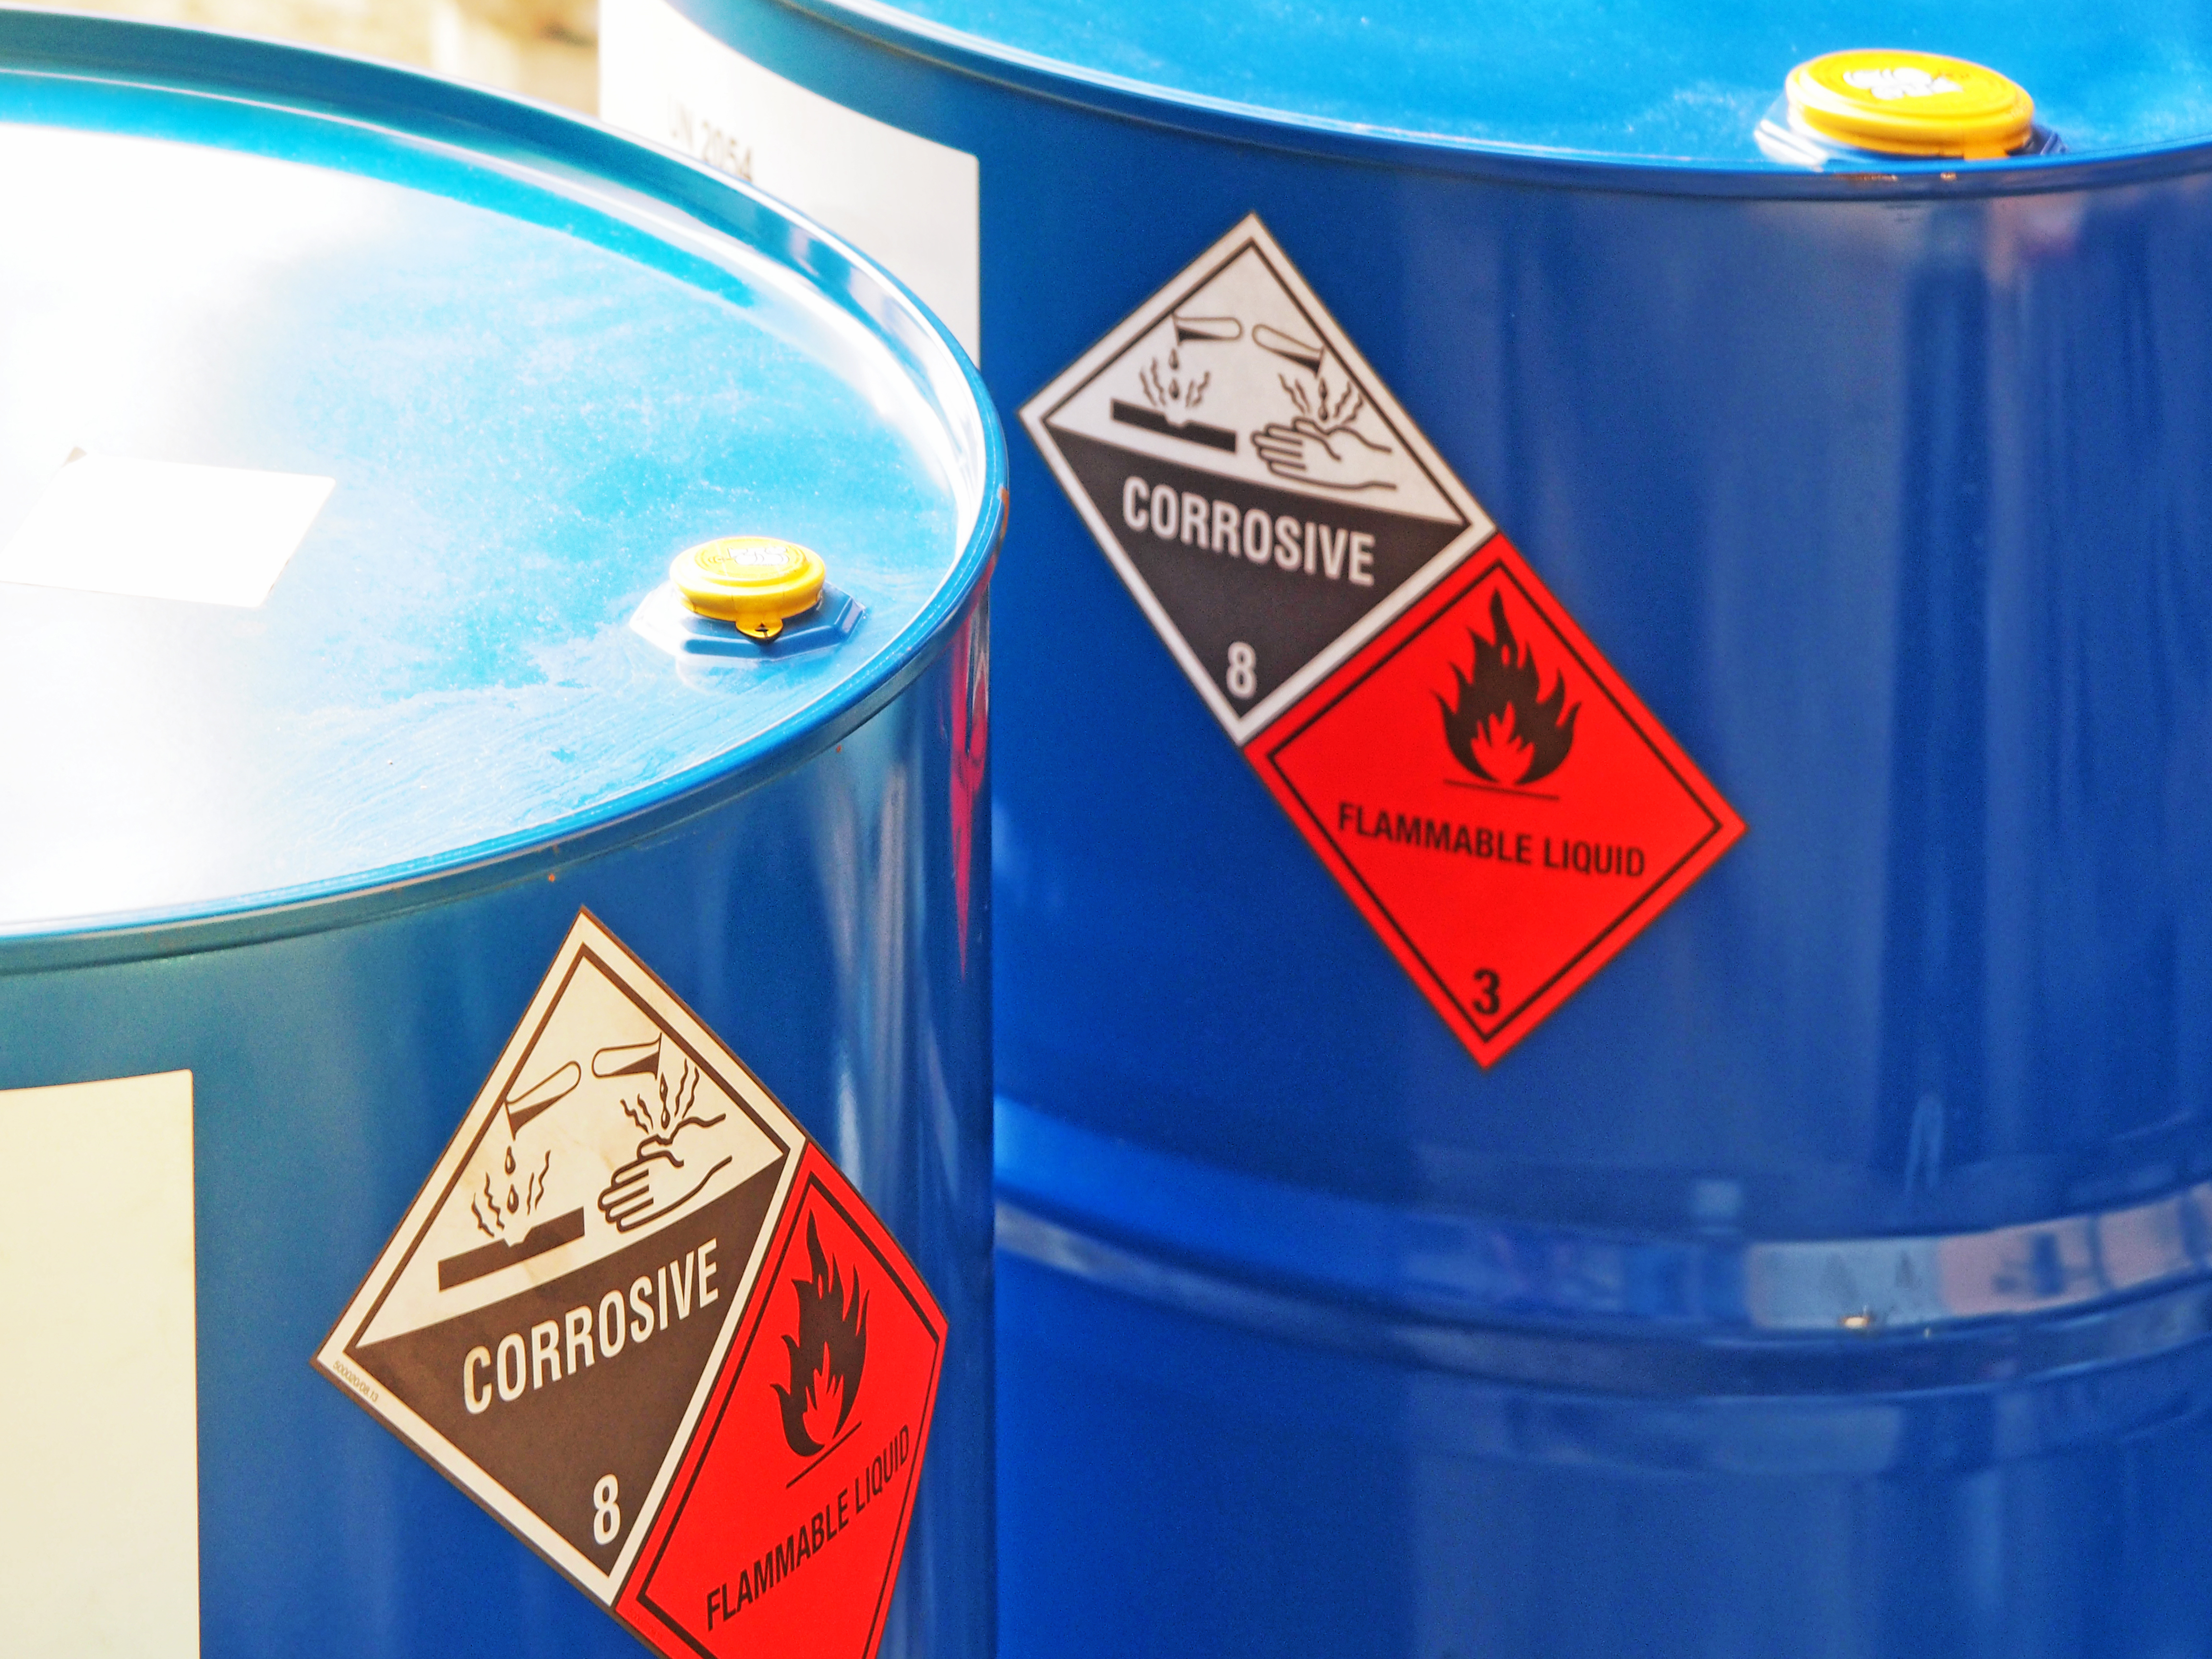 poster explaining hazardous materials labeling system